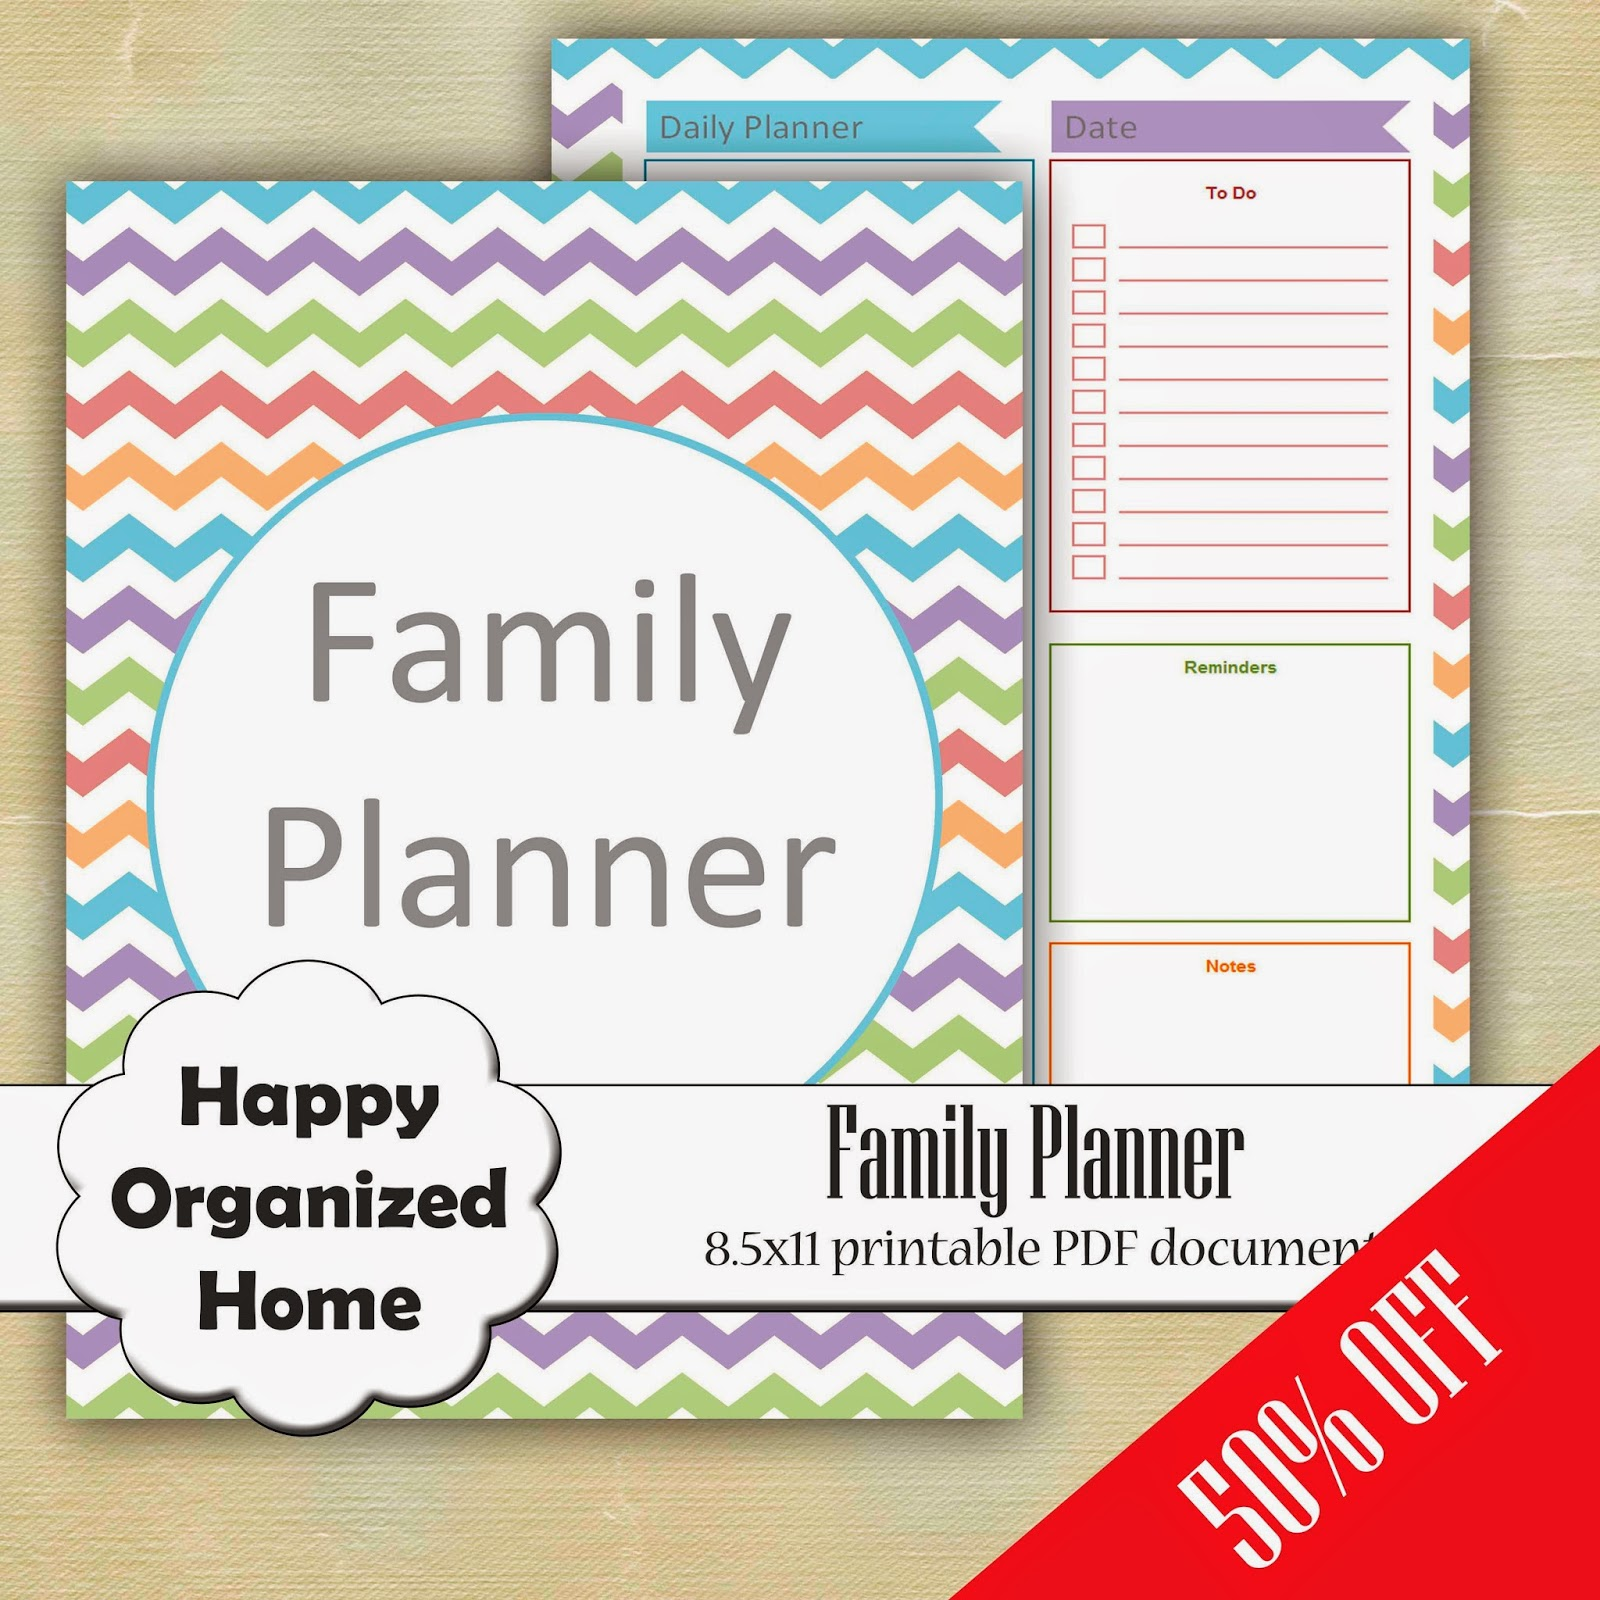 https://www.etsy.com/listing/188189441/organization-family-planner-printable?ref=shop_home_active_12